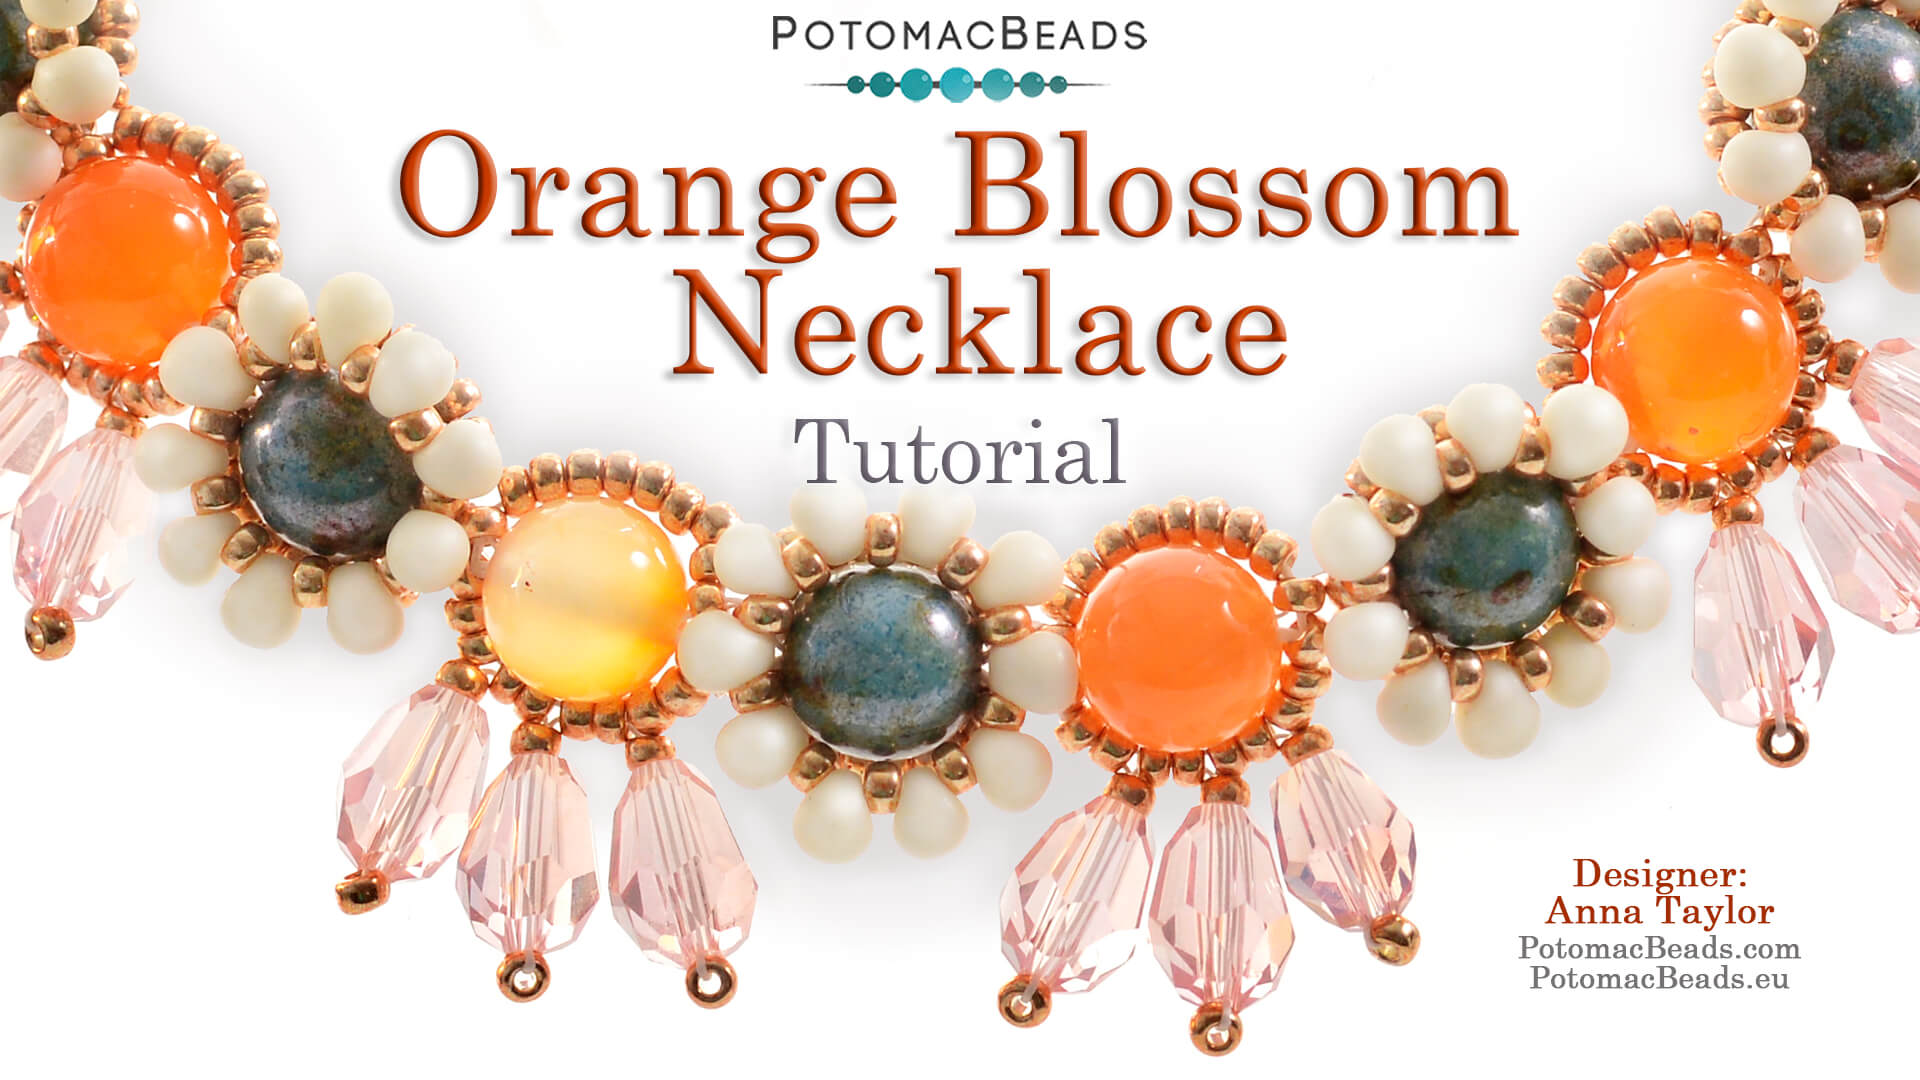 How to Bead Jewelry / Videos Sorted by Beads / Pearl Videos (Czech, Freshwater, Potomac Pearls) / Orange Blossom Necklace Tutorial